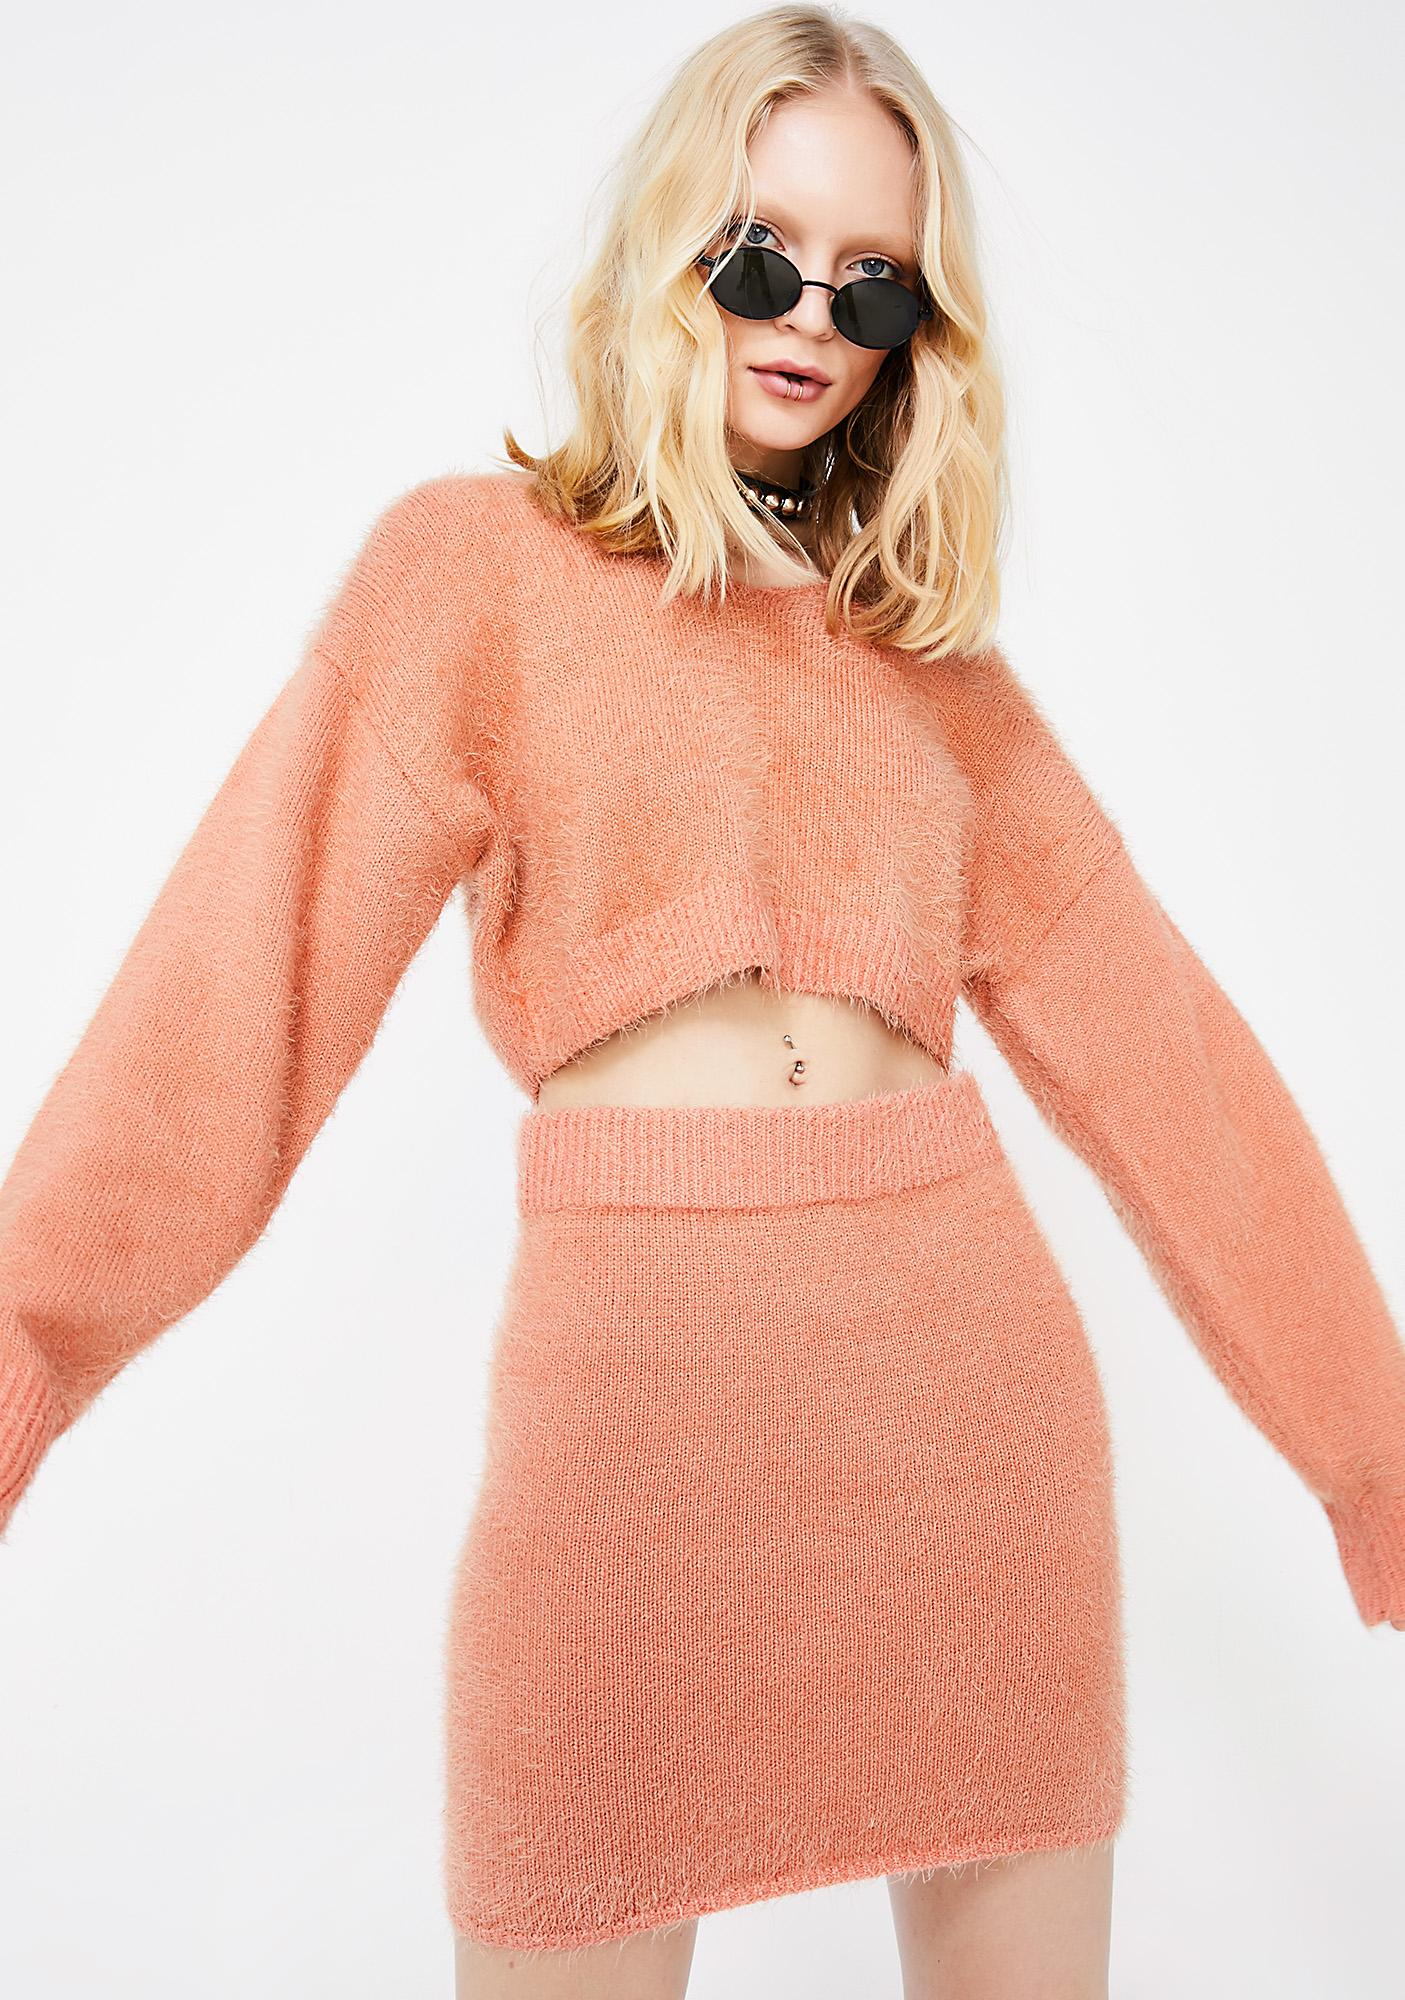 As If Fuzzy Sweater Set